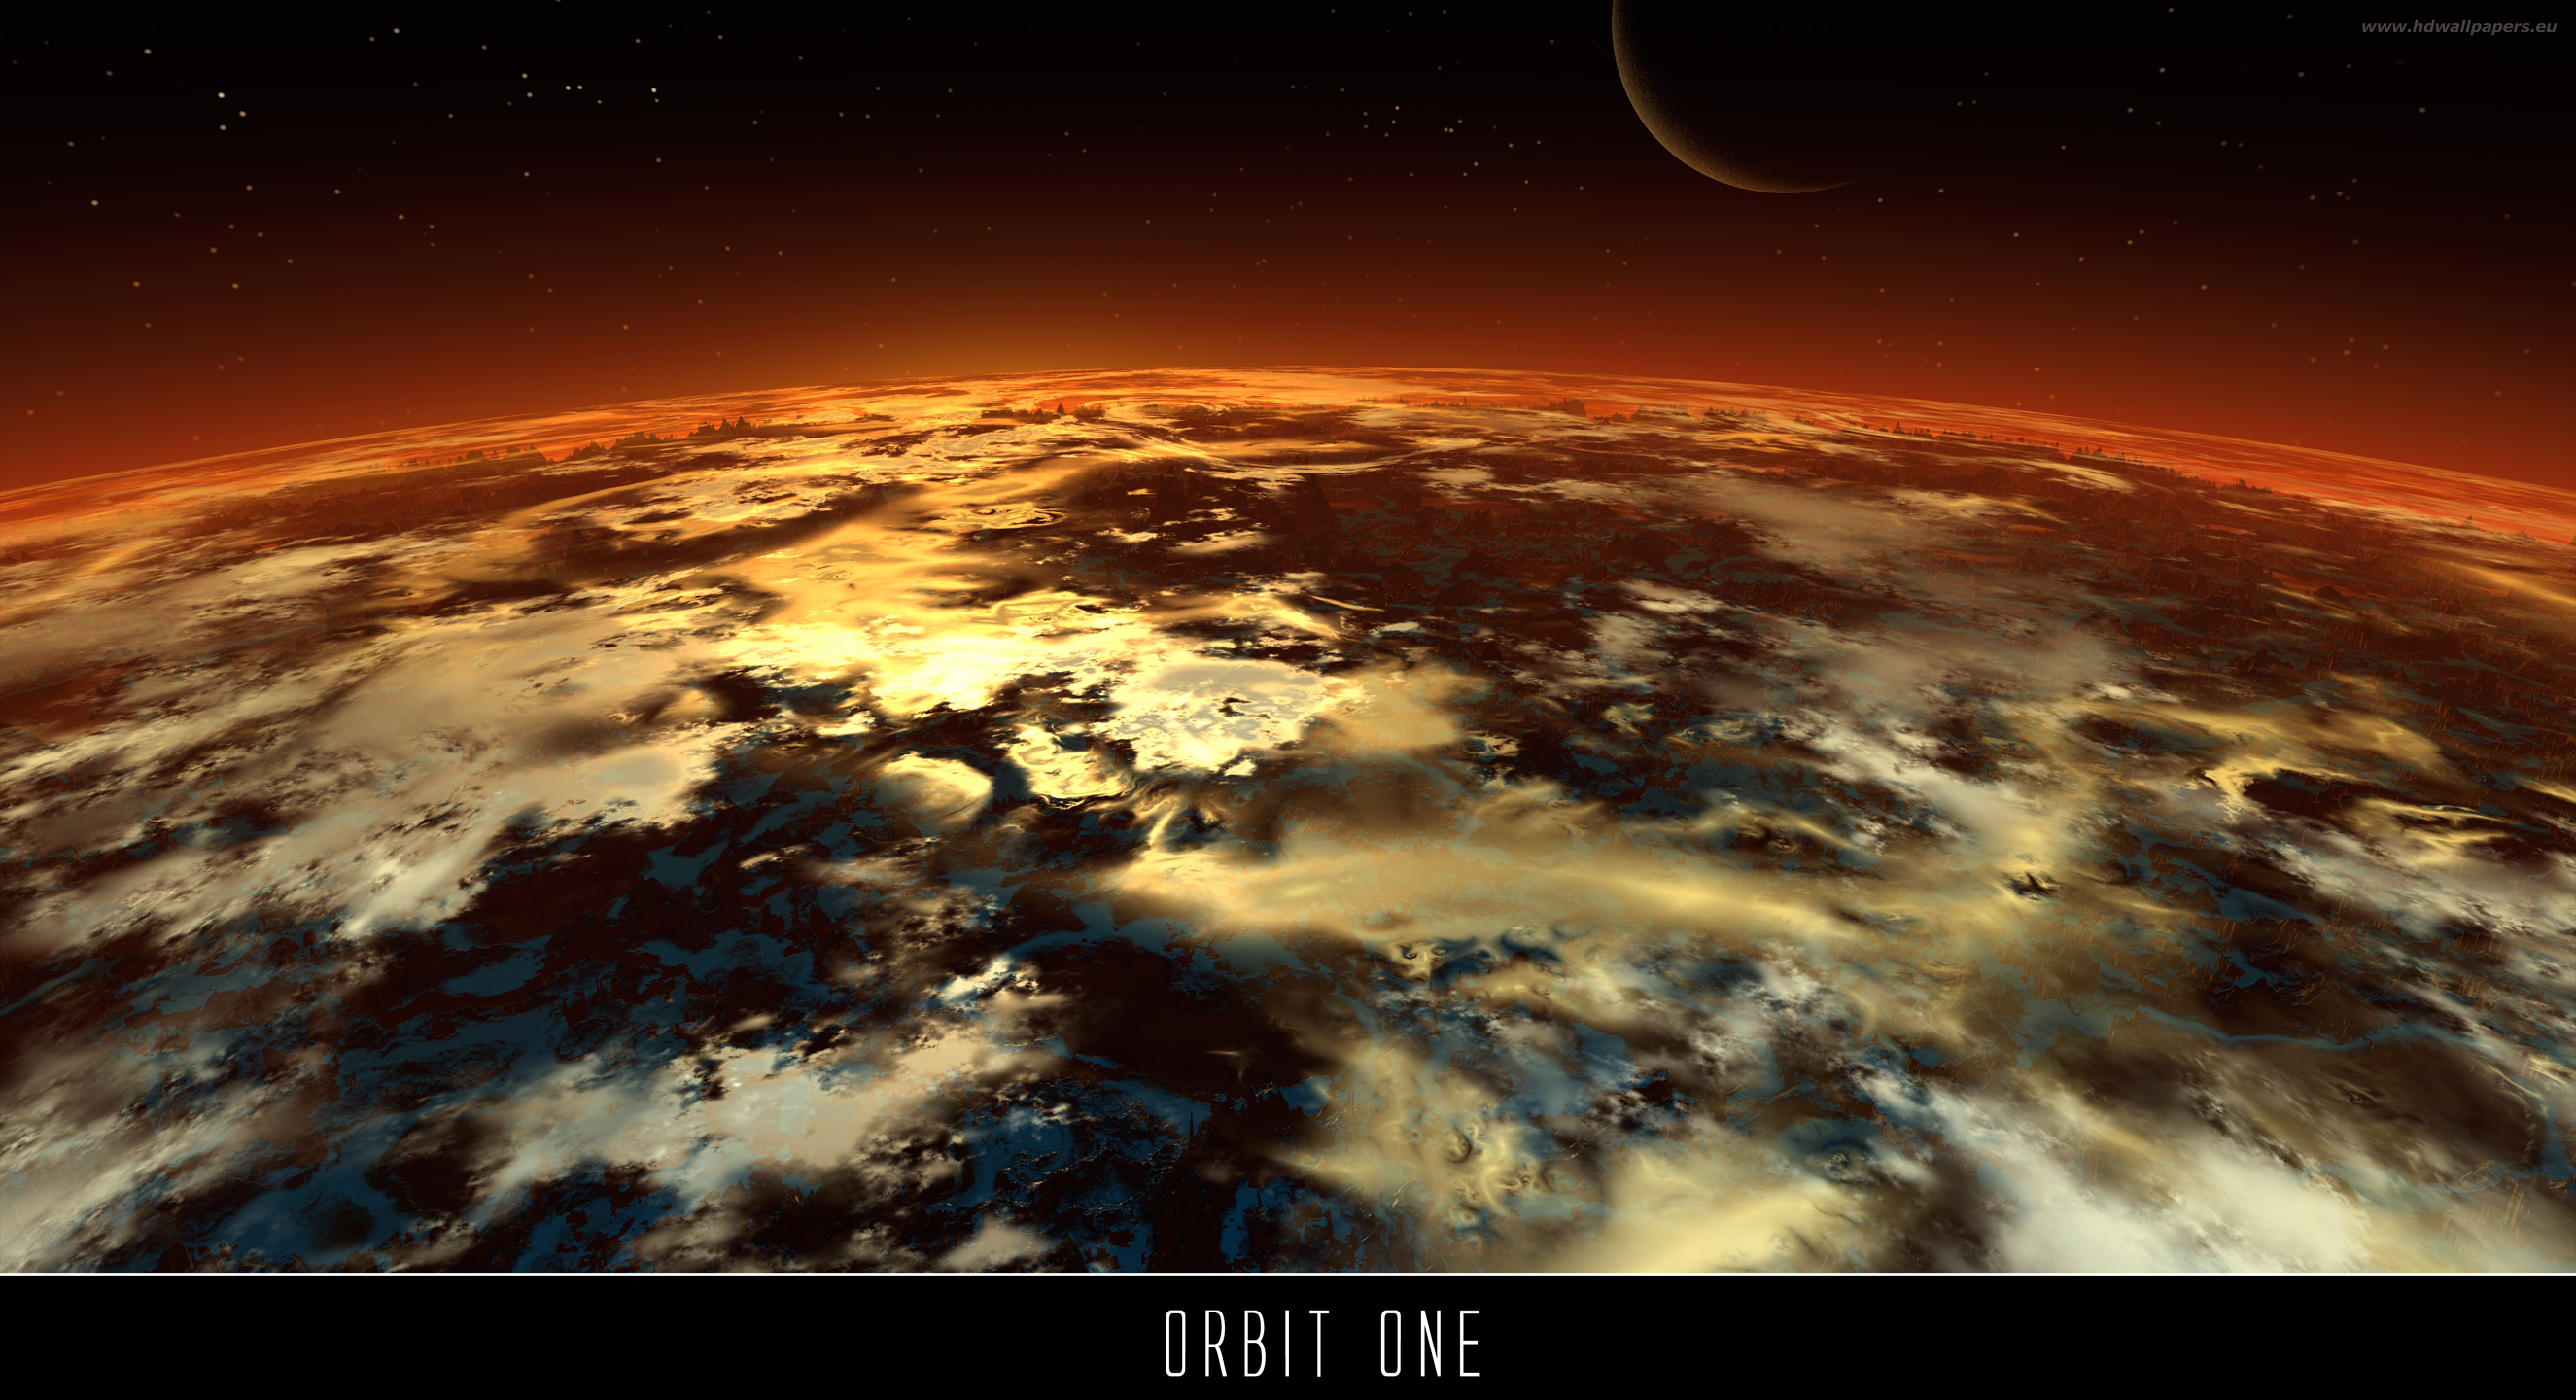 hd-wallpaper-orbit-one-2650x1440